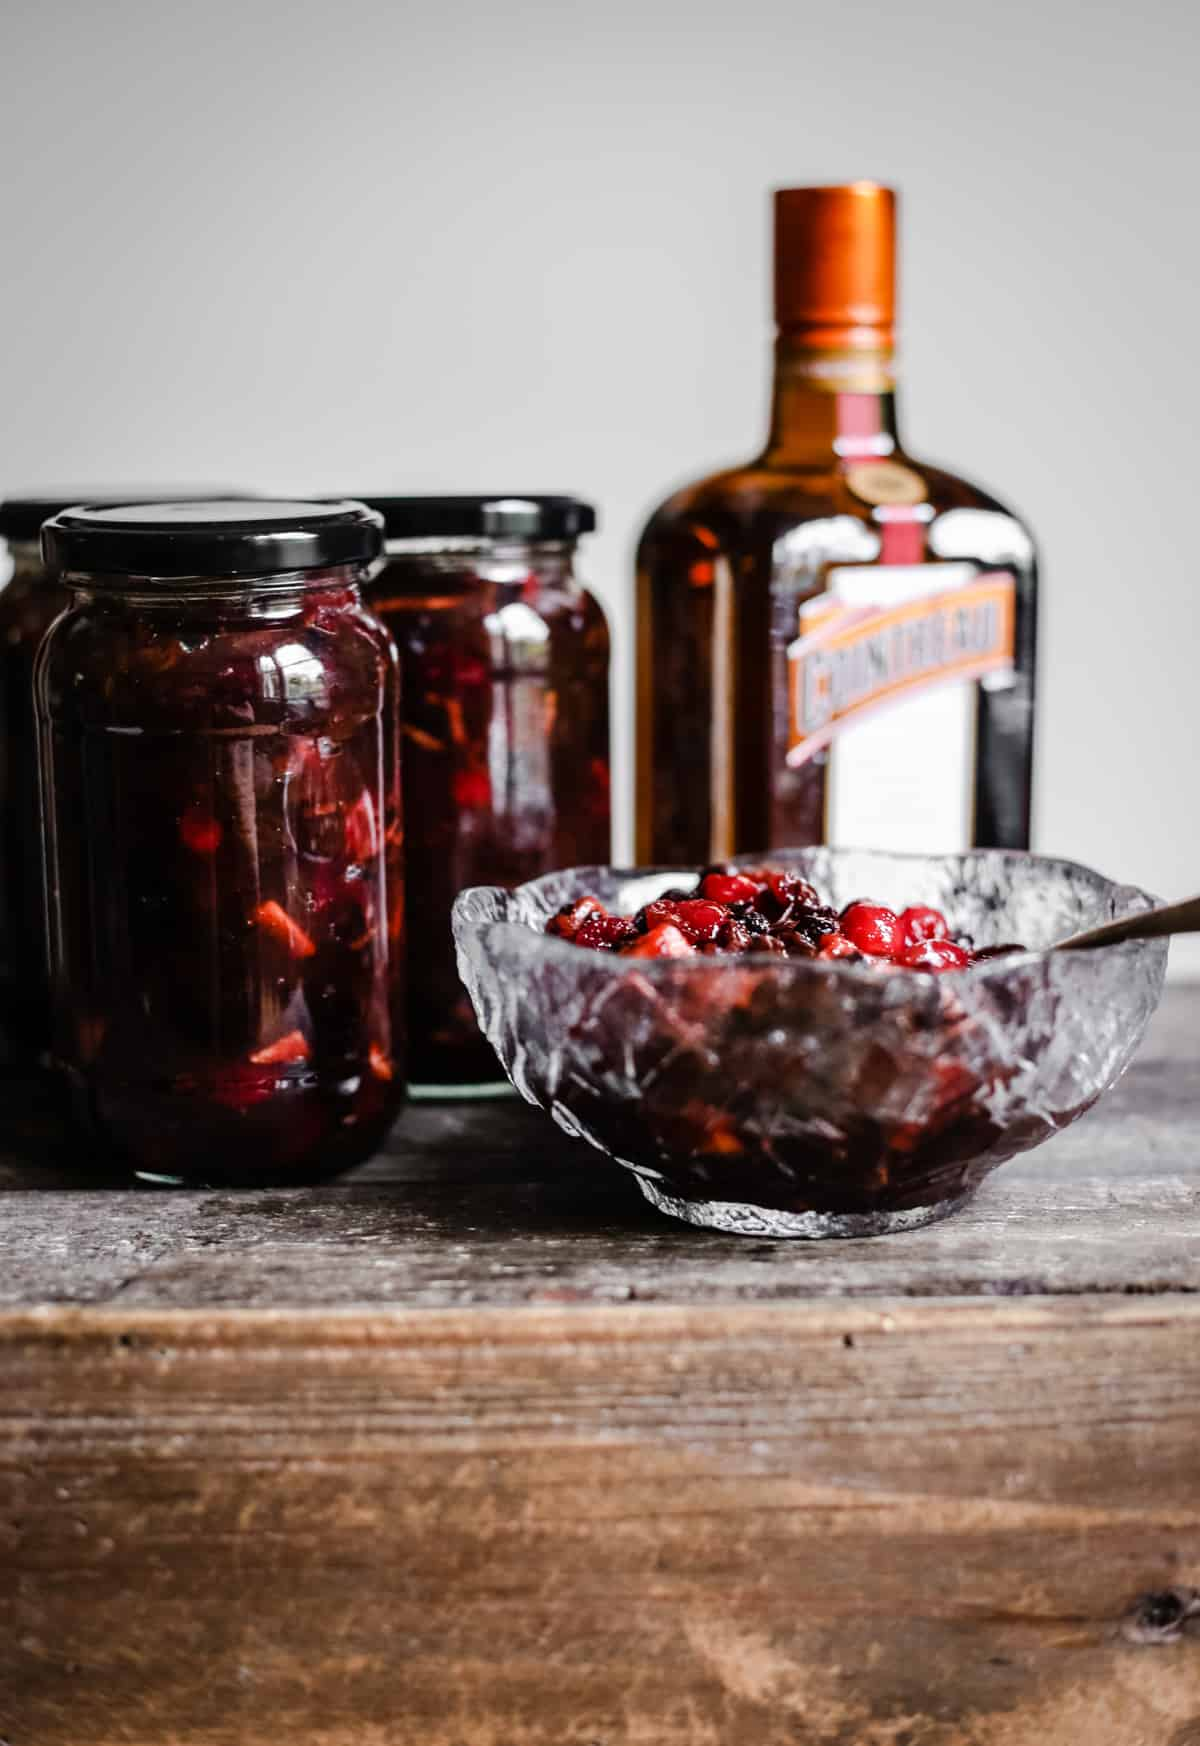 Boozy Cranberry mincemeat with cointreau in a glass bowl on a wooden table in front of cointreau and jars of mincemeat